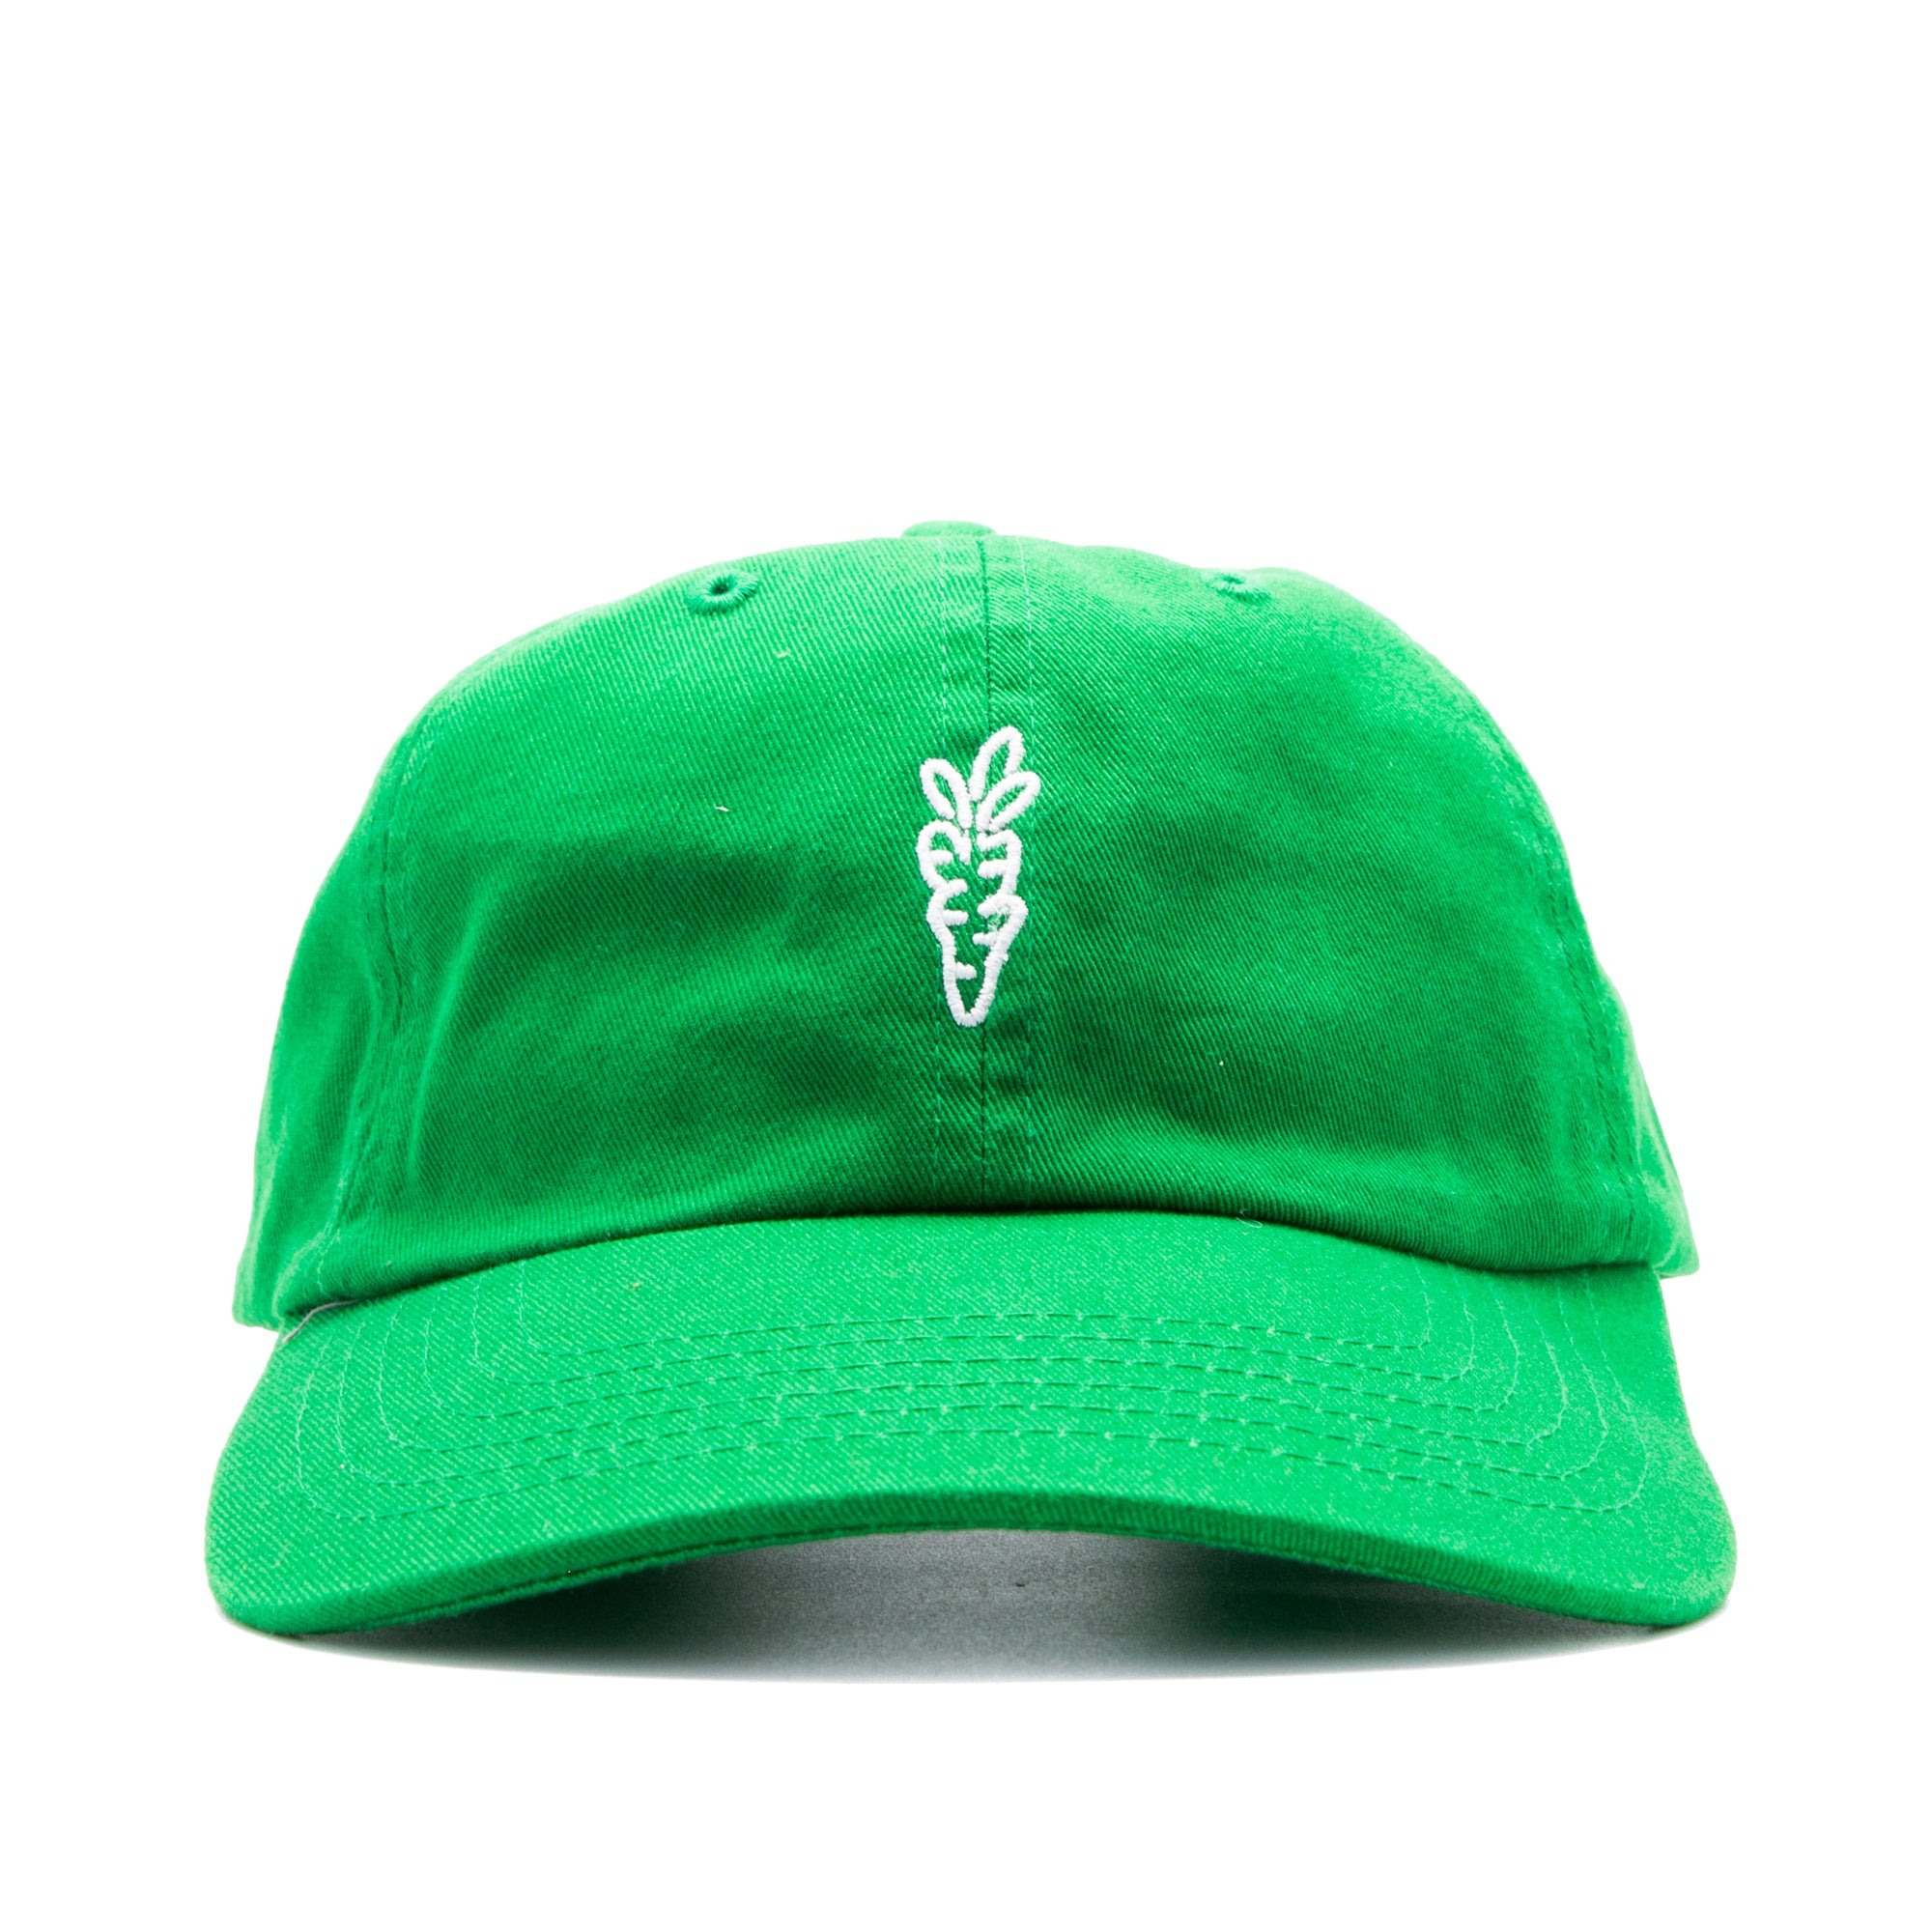 SIGNATURE BALL CAP GREEN